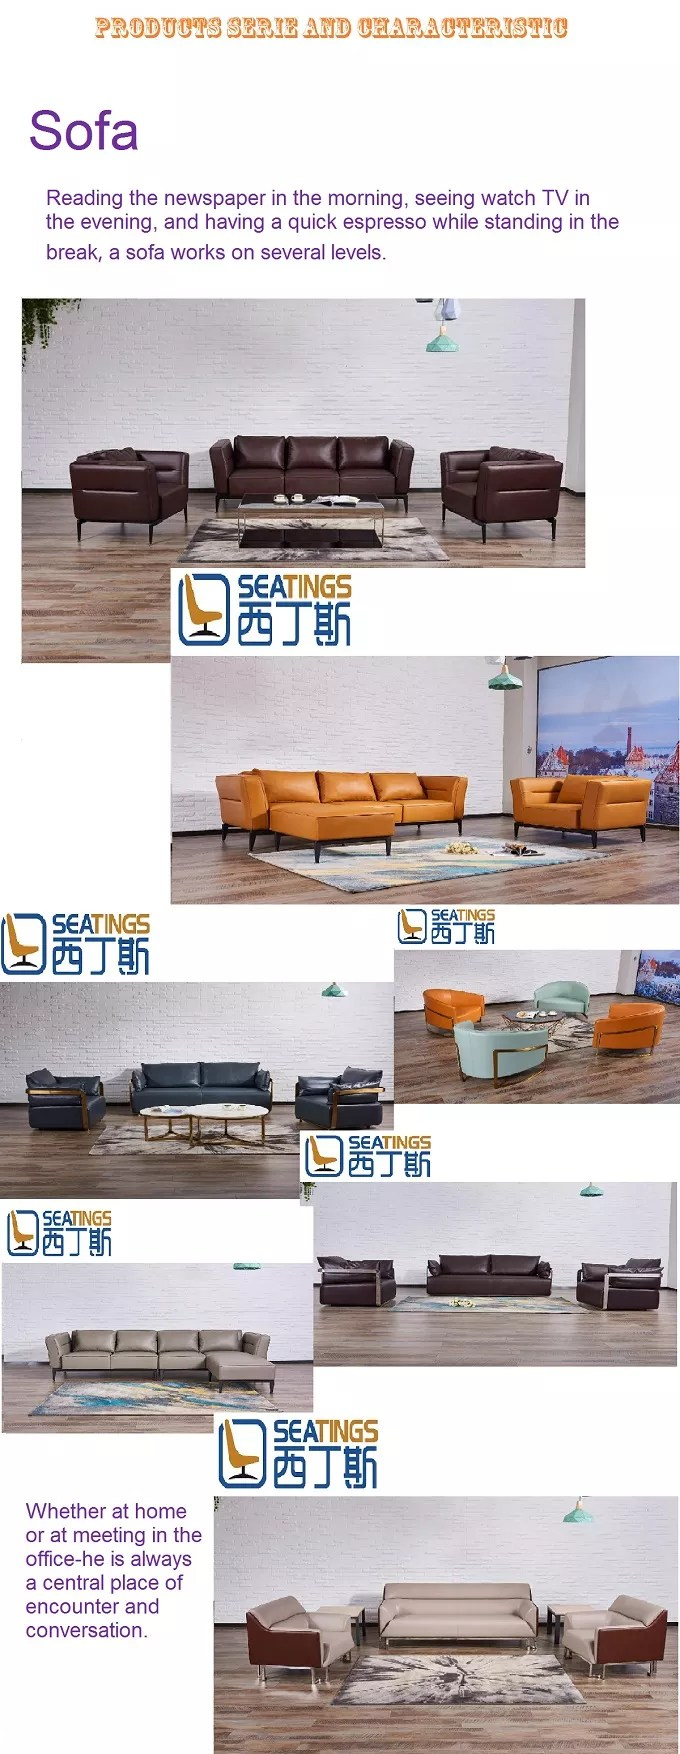 sofaworks reading number modular sofa furniture systems alibaba selling office set blue leather for